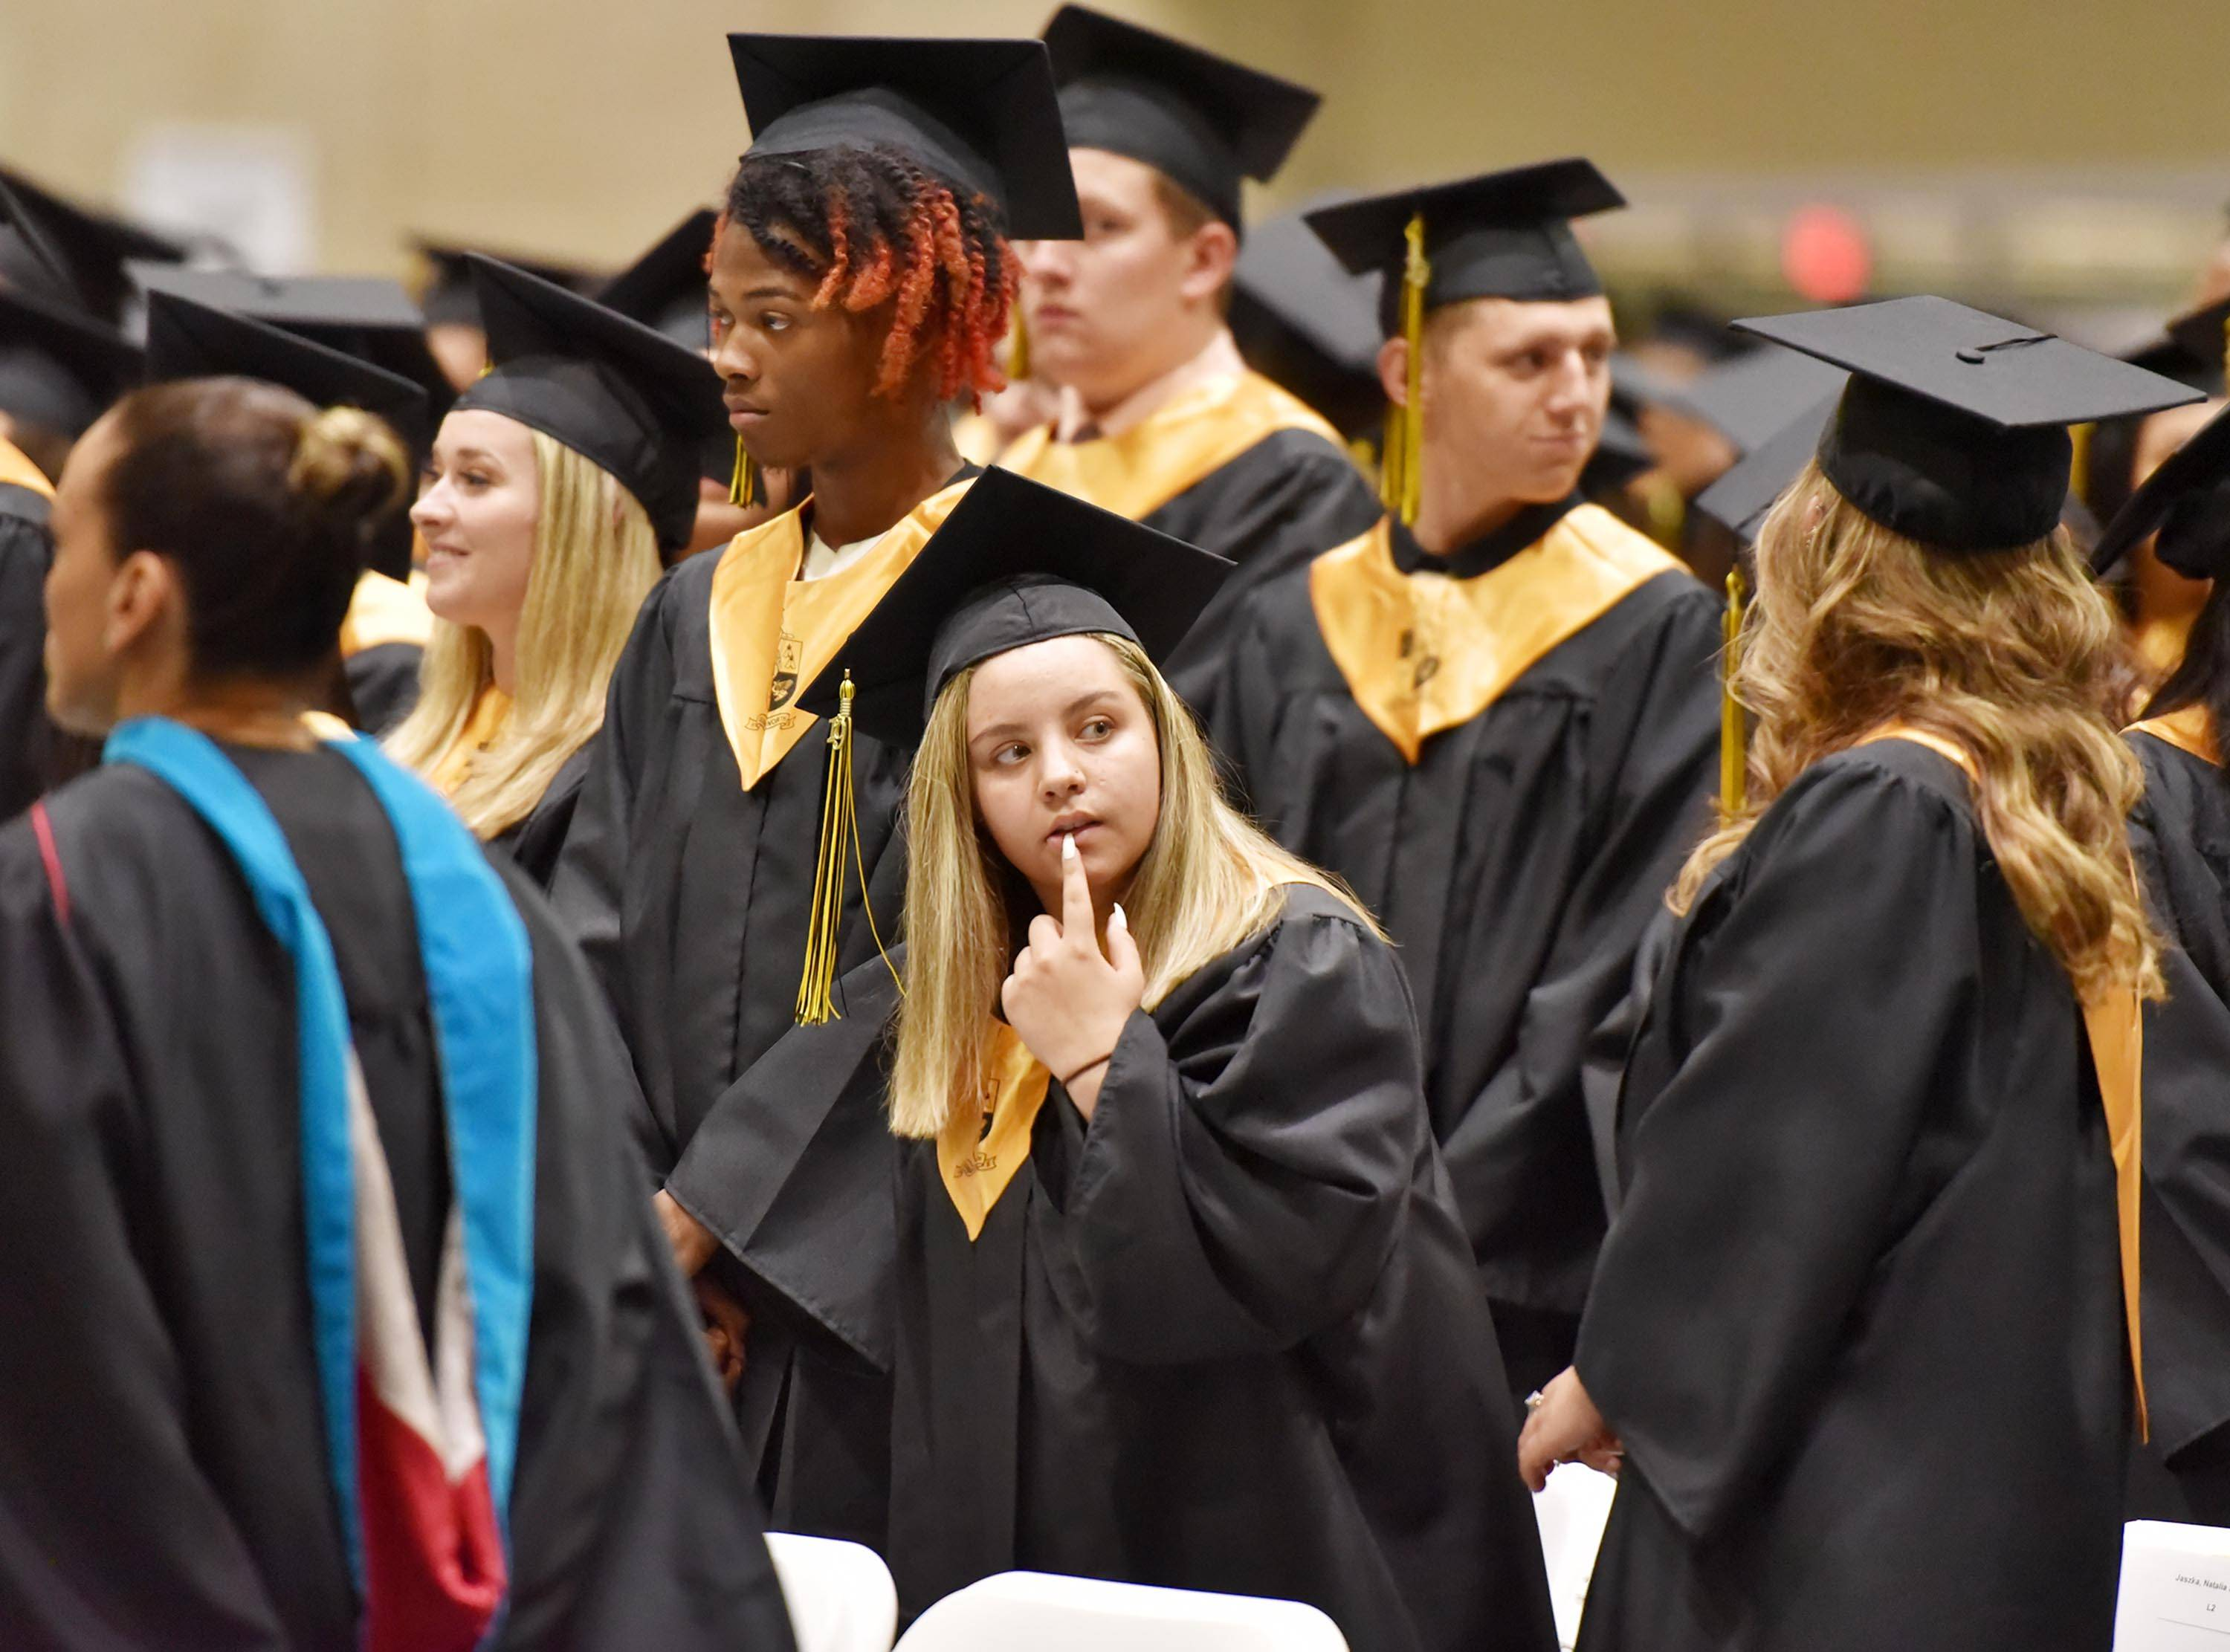 Glenbard North High School held its graduation ceremony on Thursday, May 23 at the College of DuPage in Glen Ellyn.